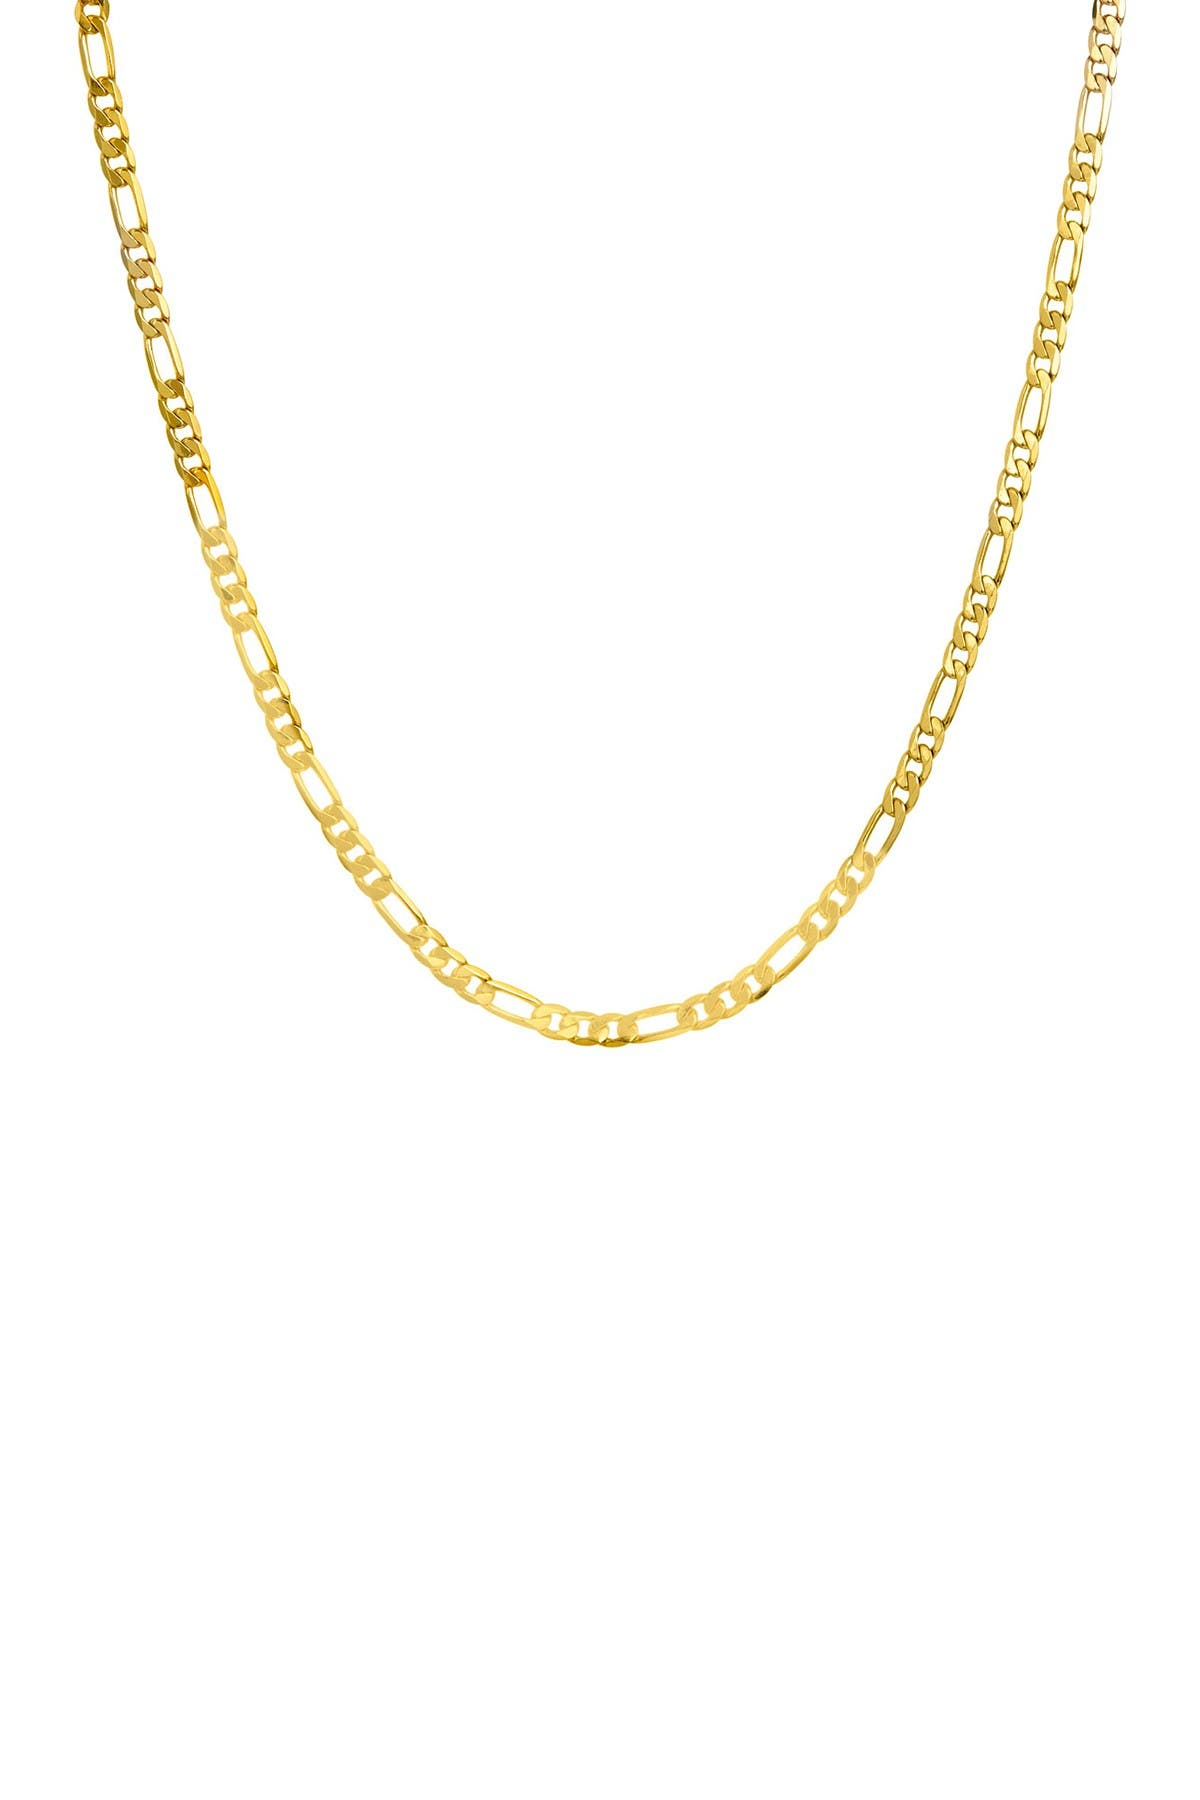 Image of Savvy Cie 18K Gold Bronze 3mm Figaro Chain Necklace